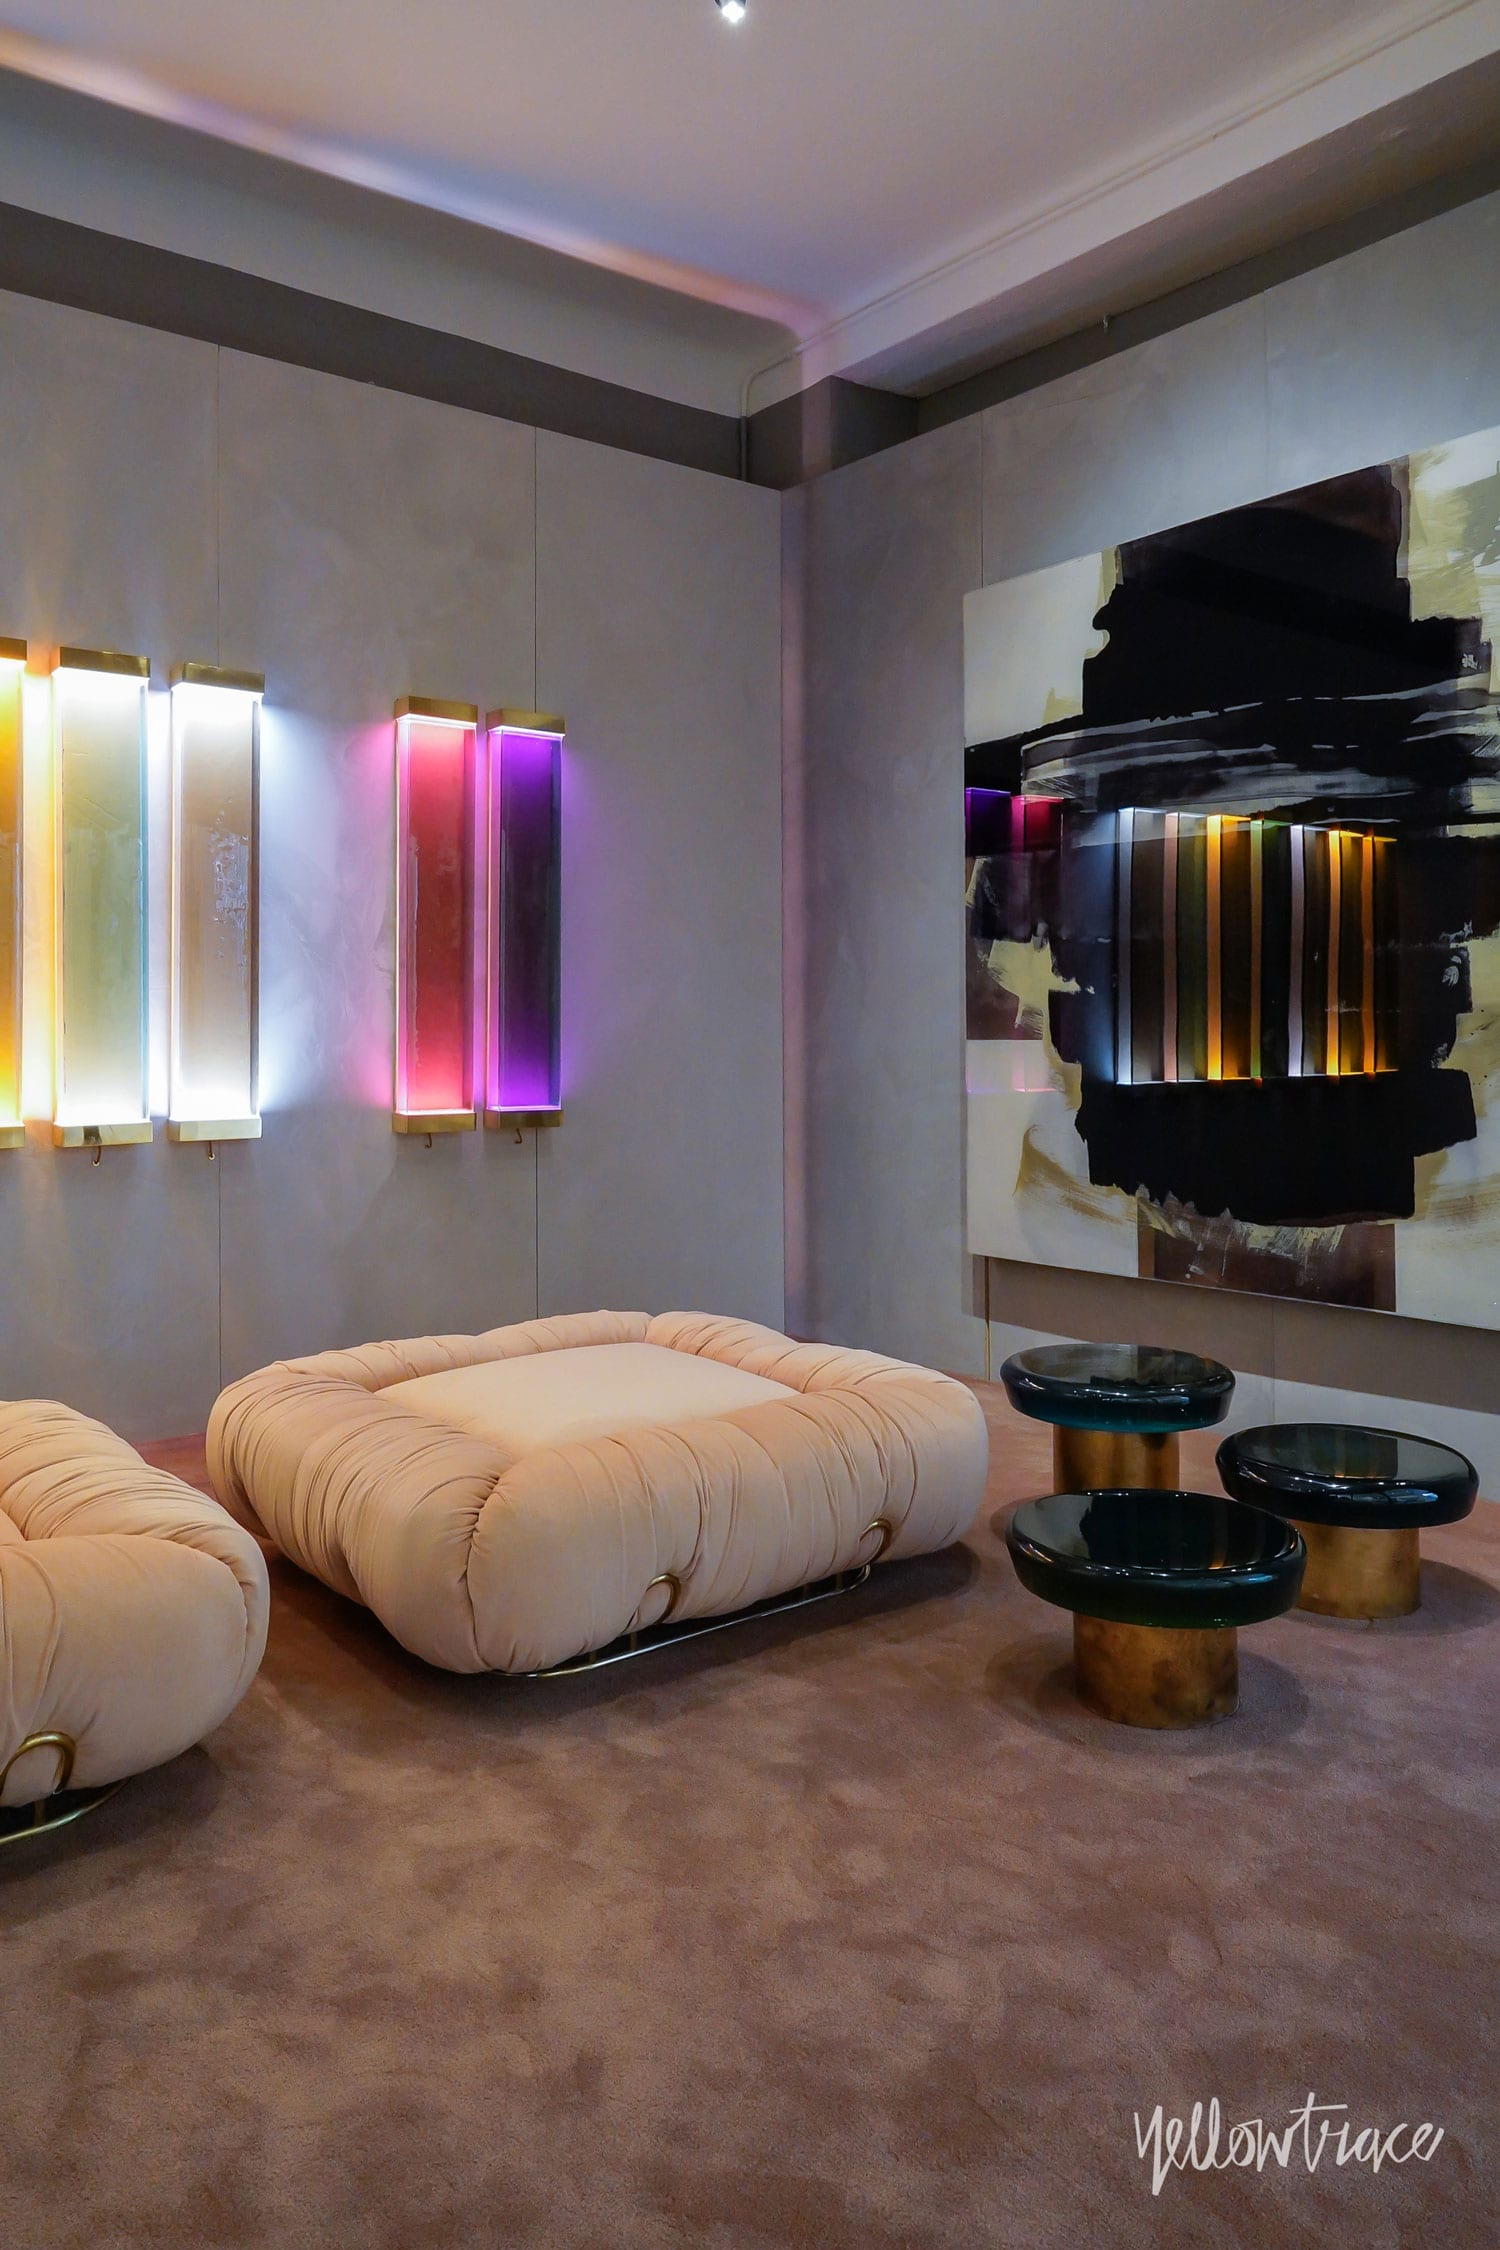 Transparency Matters Furniture Lighting And Art Collection By Draga Aurel Yellowtrace 004